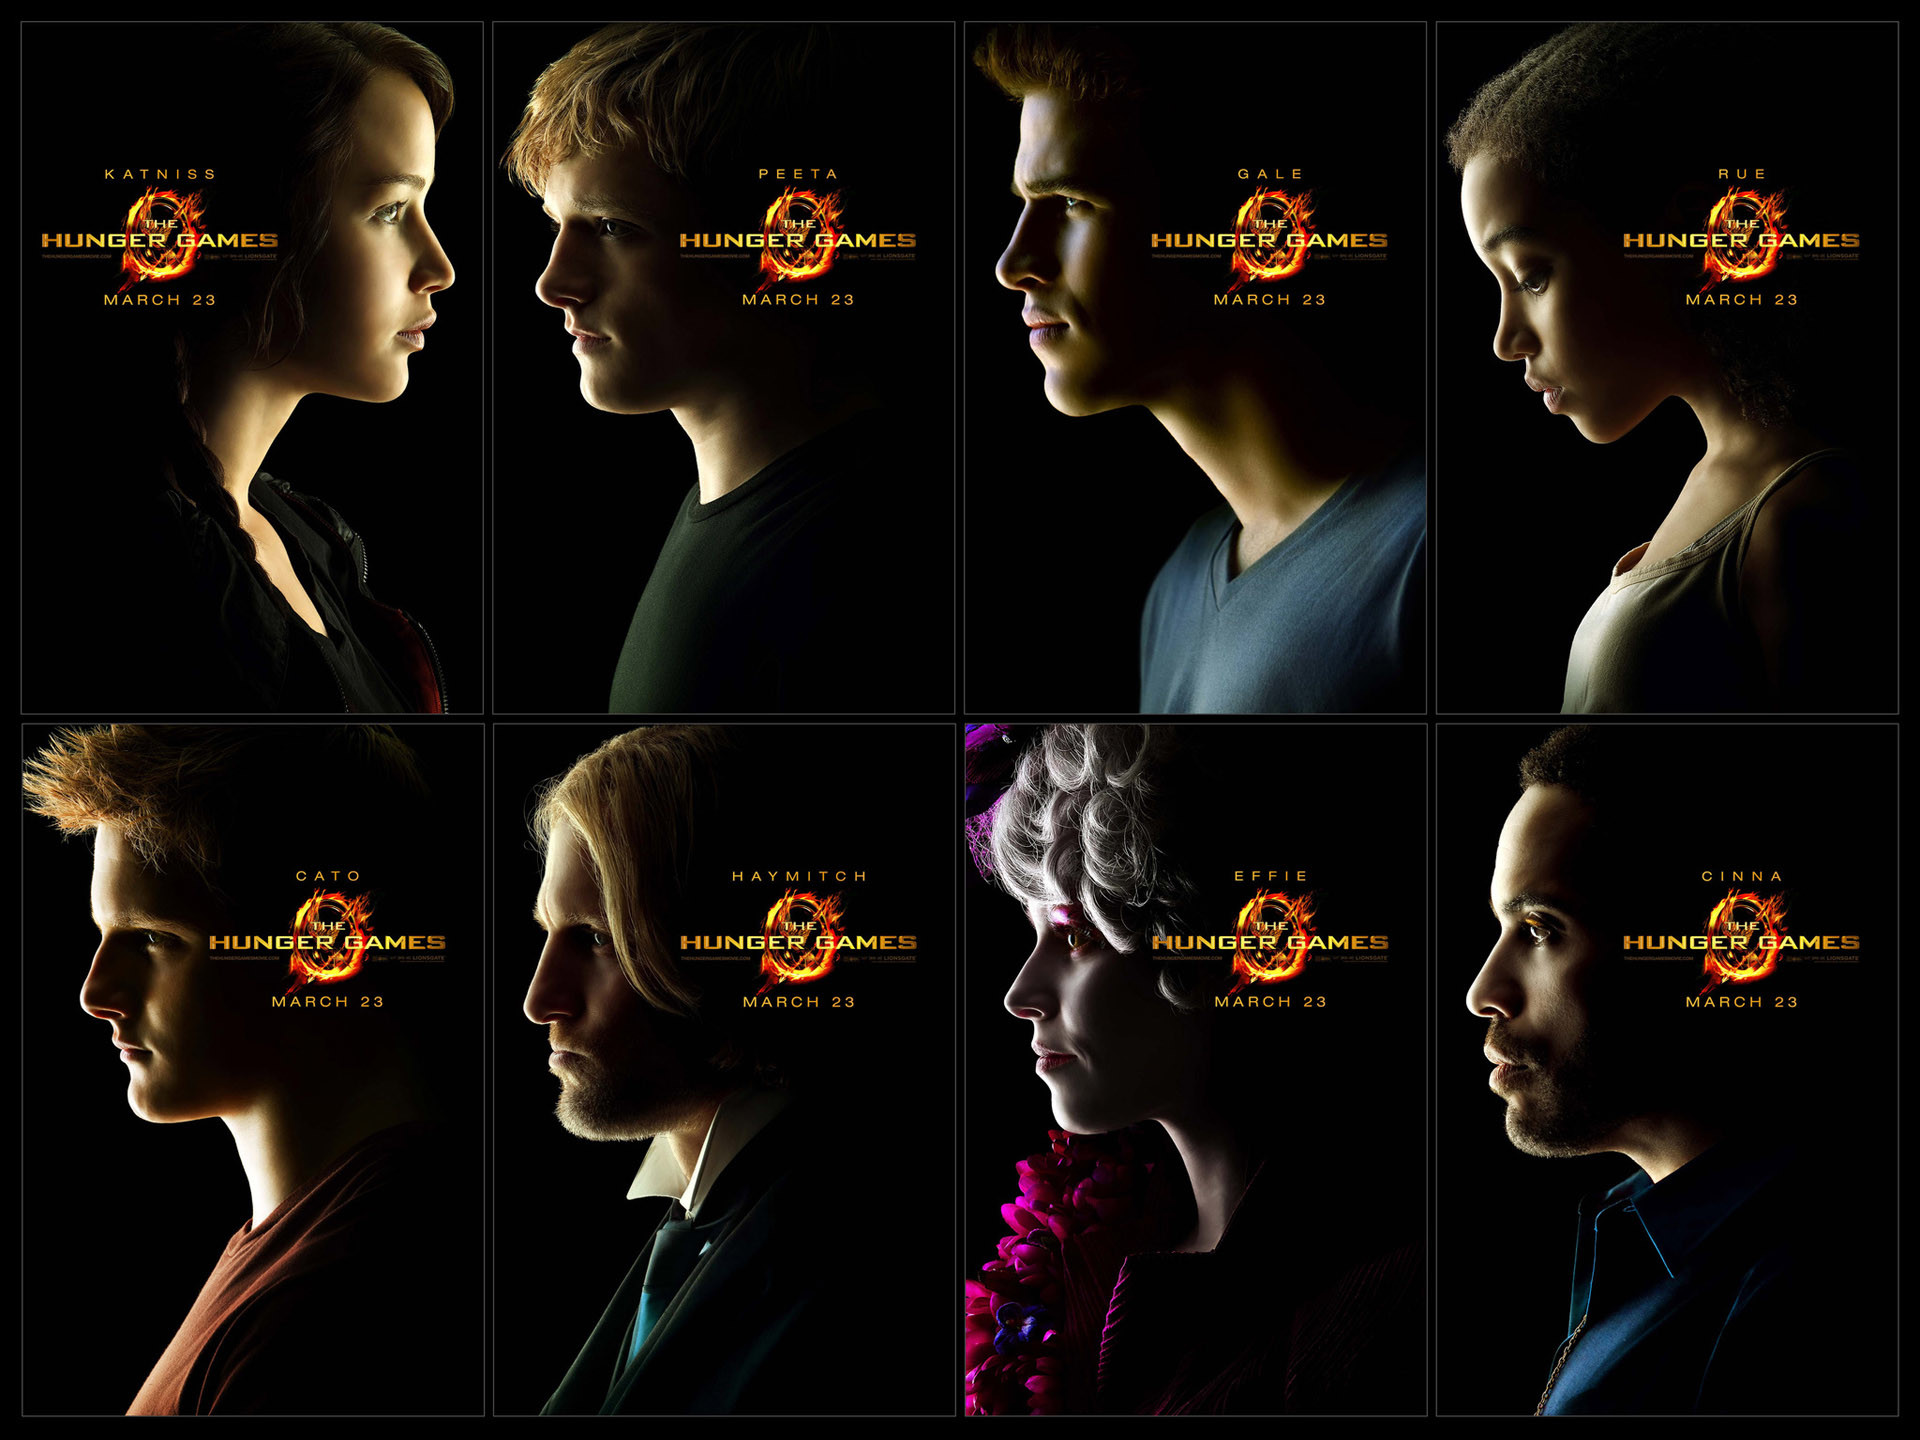 1920x1440 Movie - The Hunger Games Cato (The Hunger Games) Katniss Everdeen Jennifer  Lawrence Josh